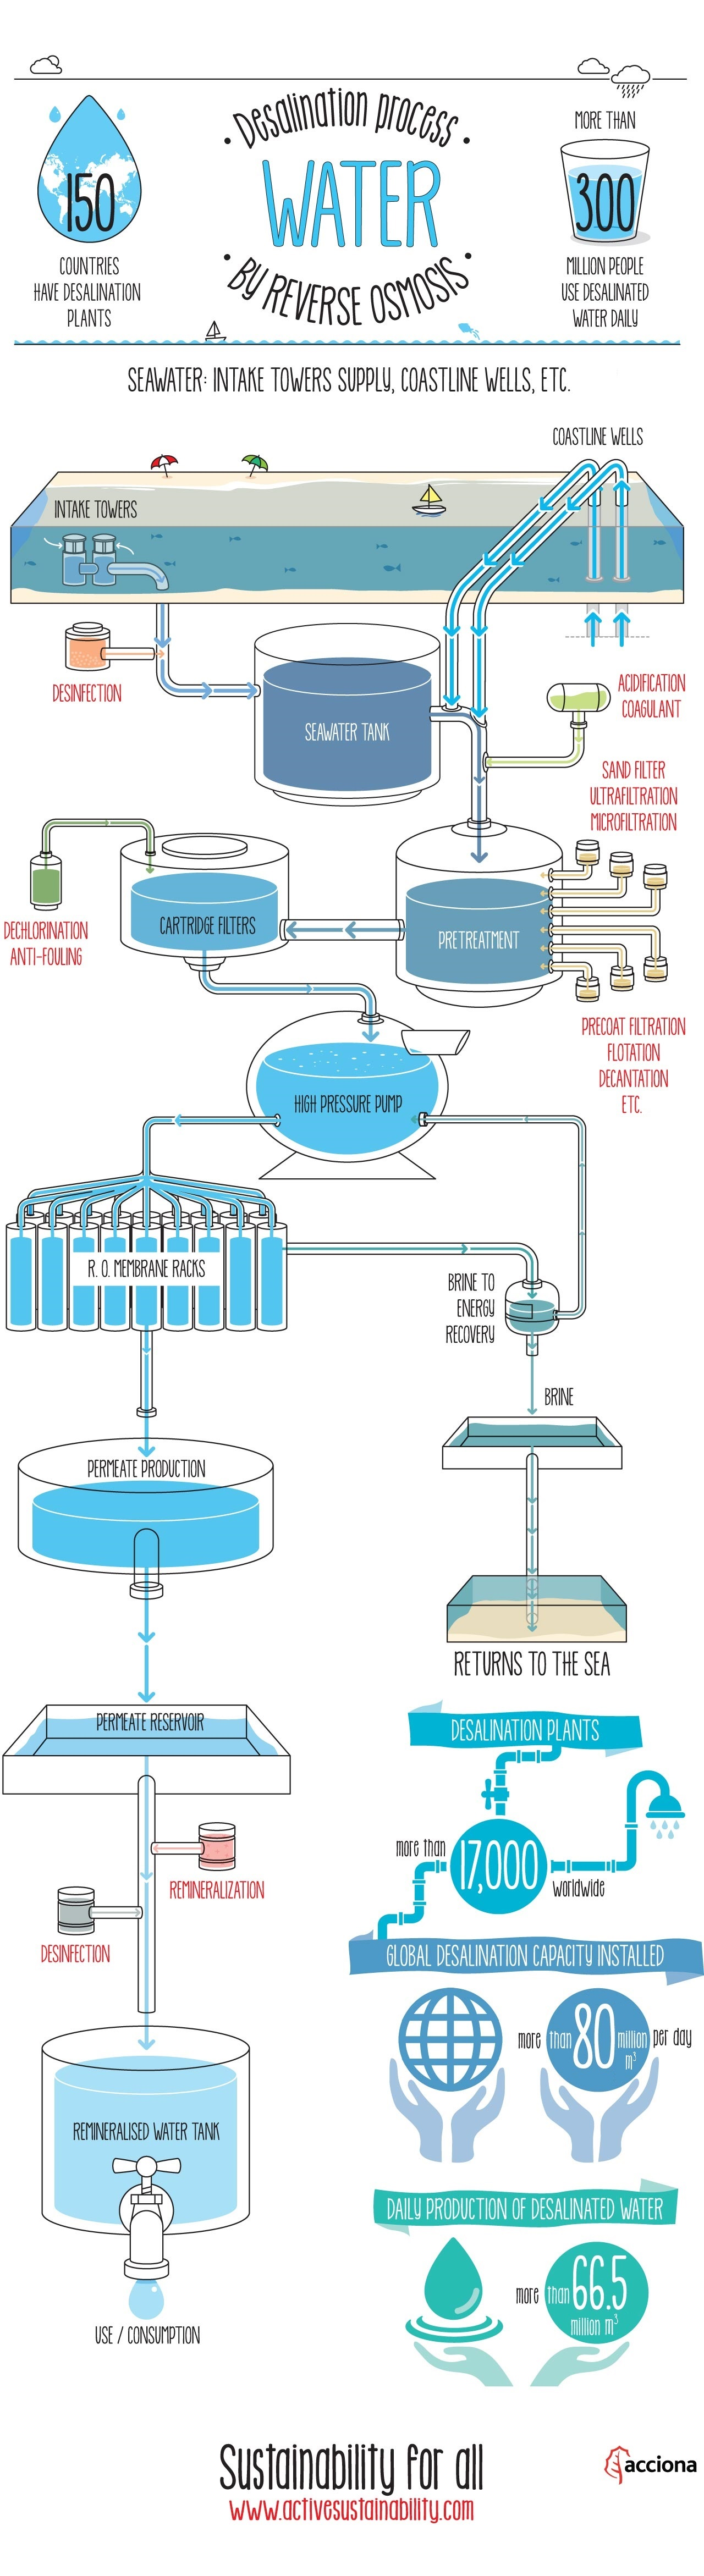 Water desalination process by reverse osmosis